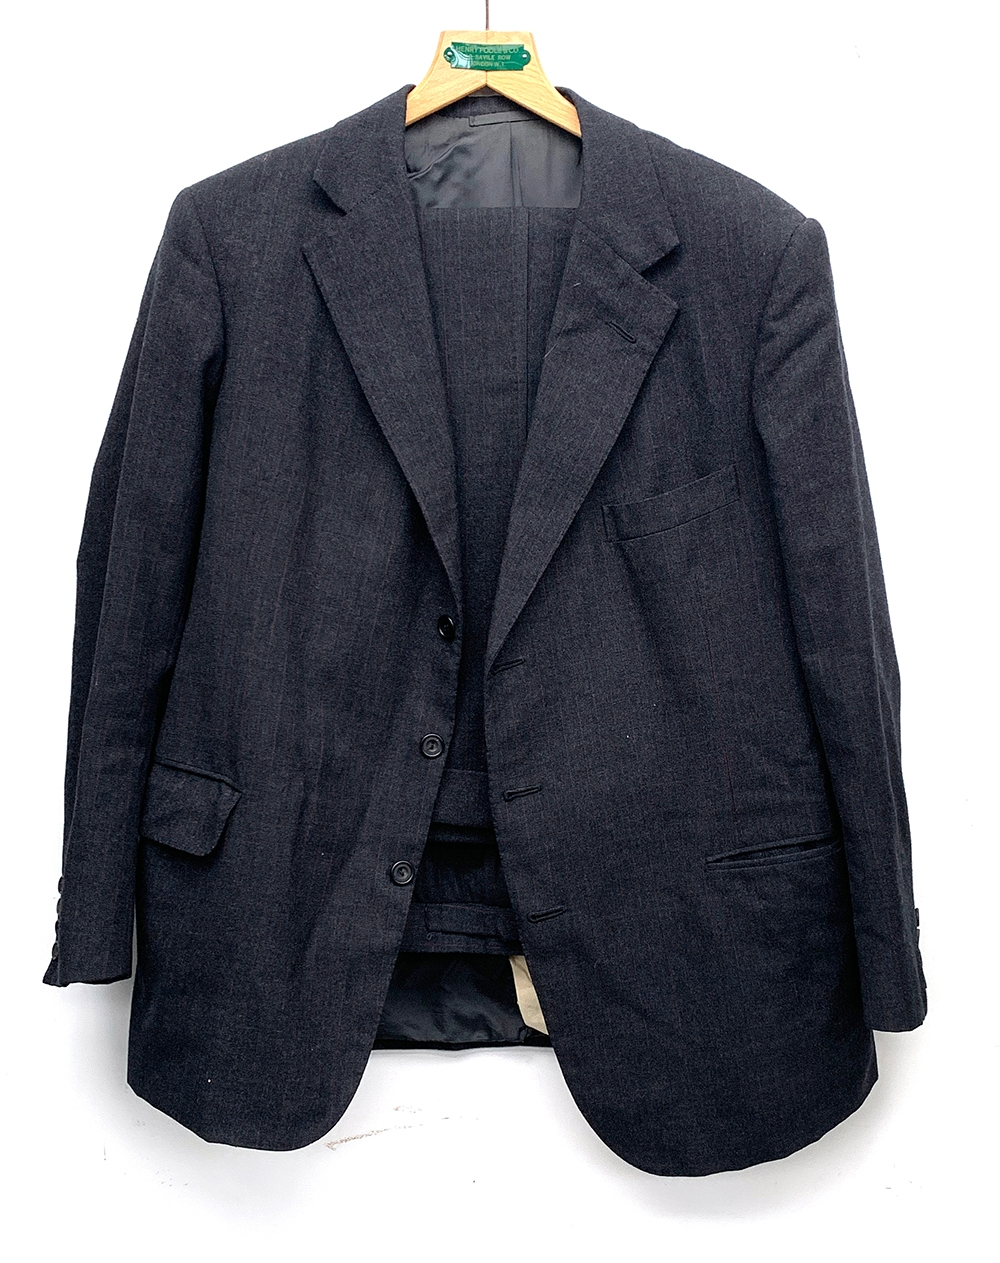 A gent's single breasted wool suit with two pairs of trousers, tailored by Sullivan, Woolley & - Image 3 of 3